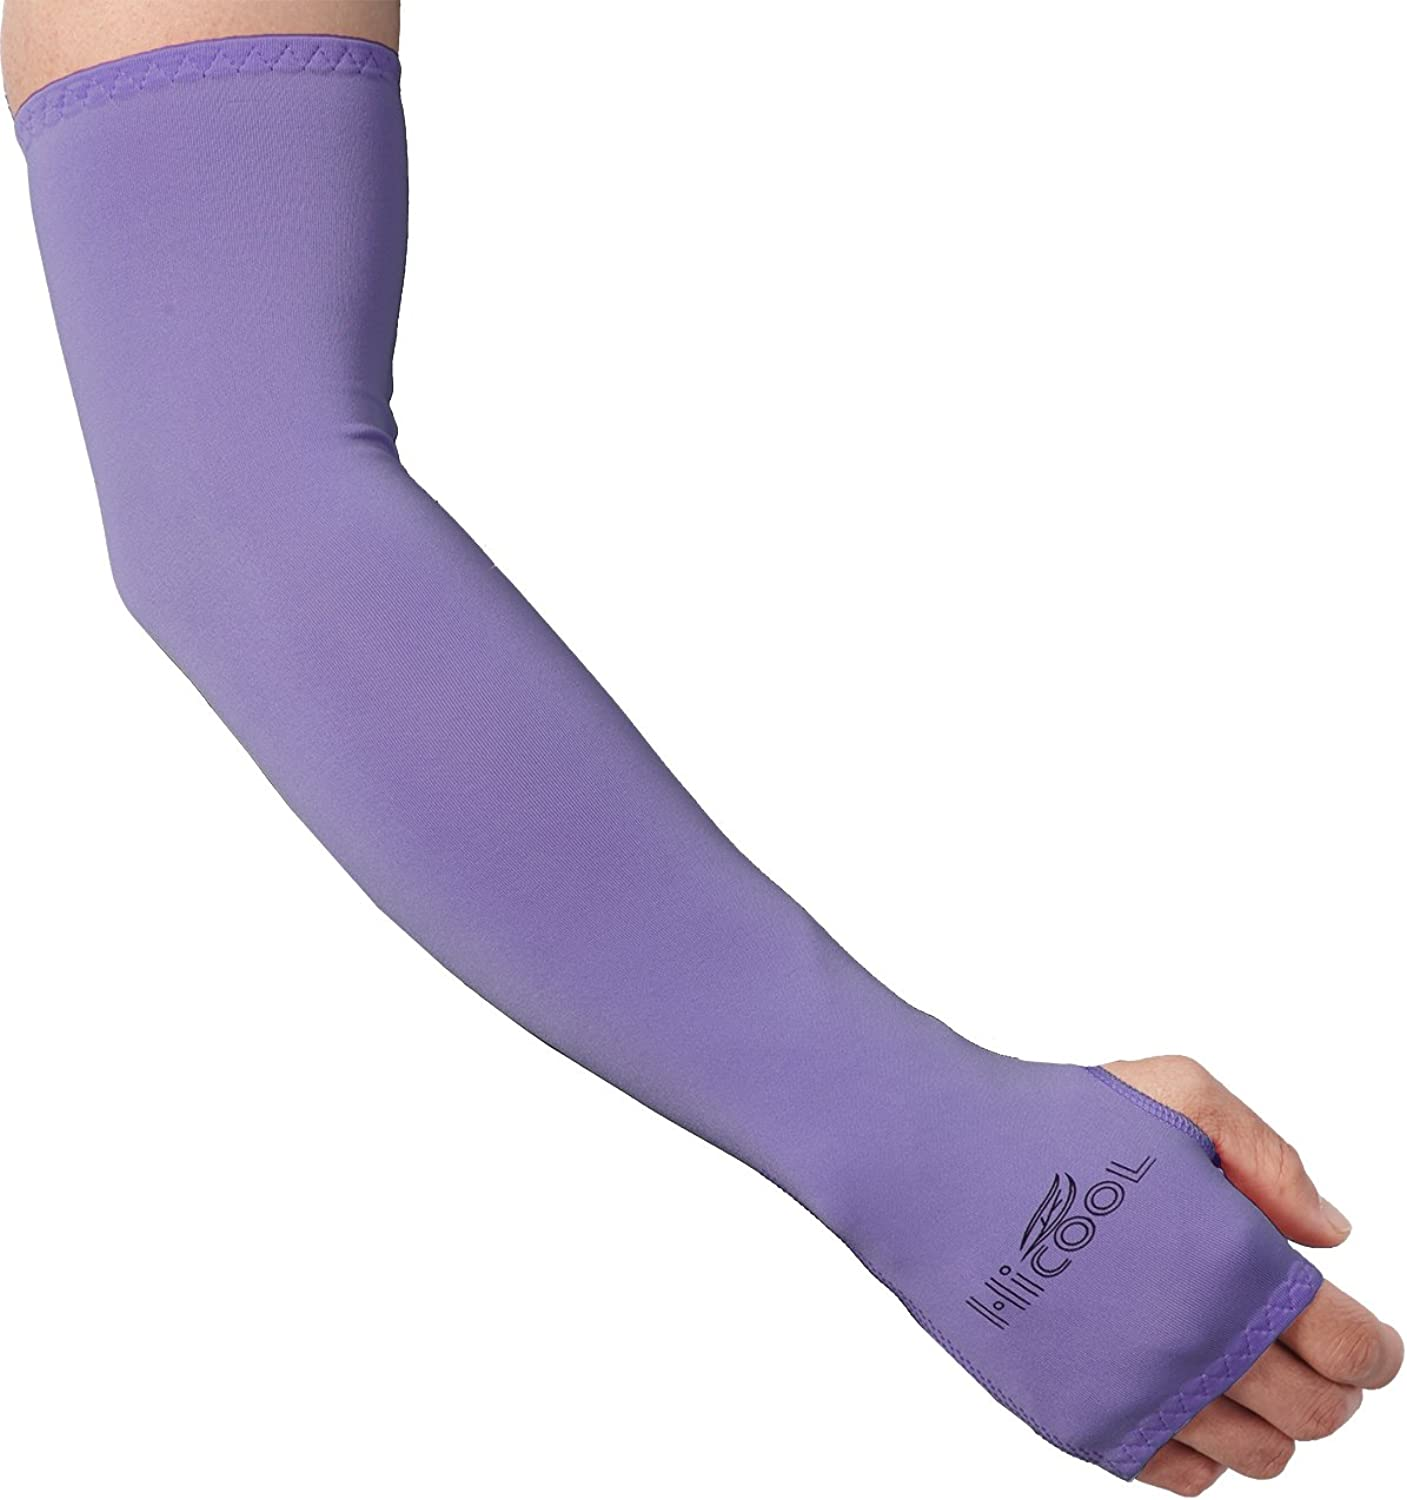 H2H SPORT Unisex Sports Sun Protection Arm Cooling Sleeve